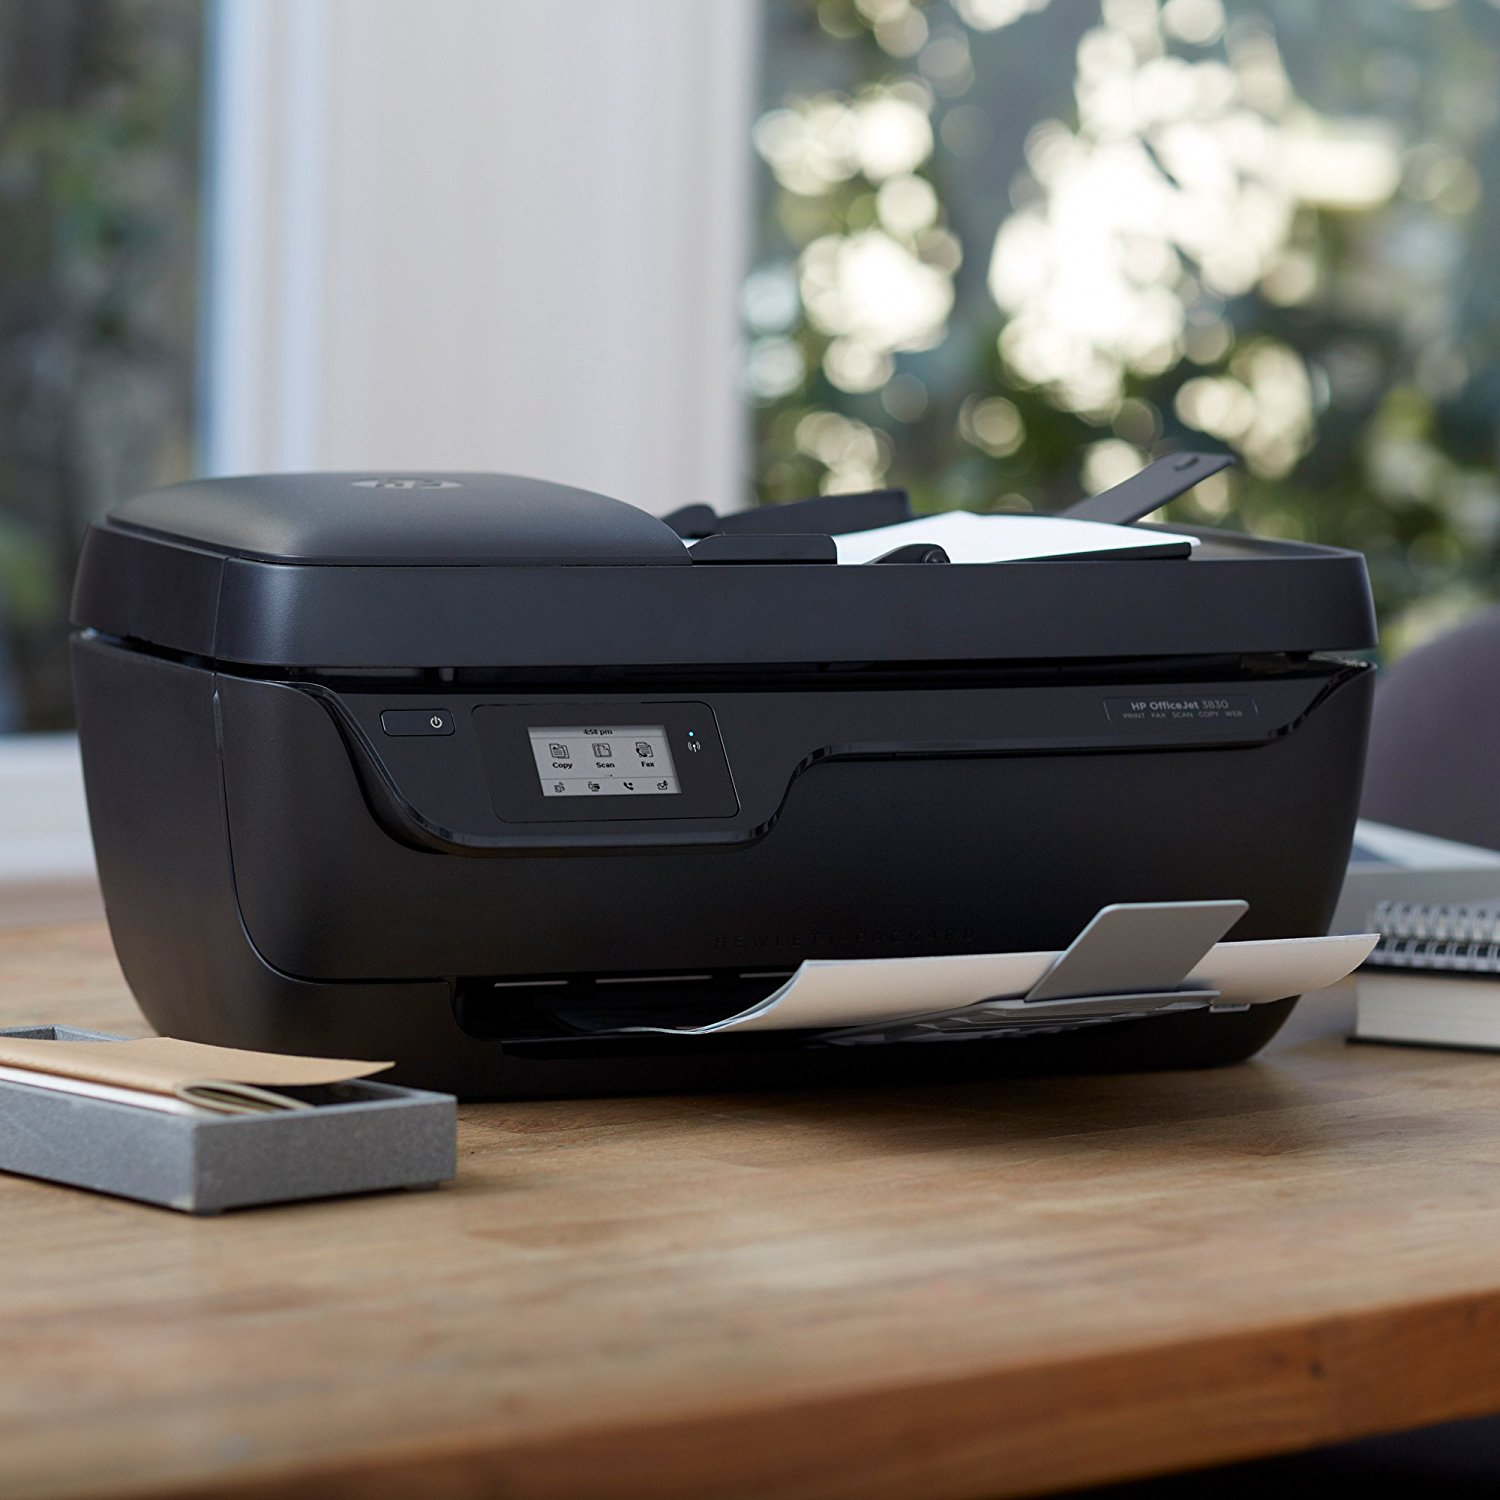 HP Officejet 3833 Review